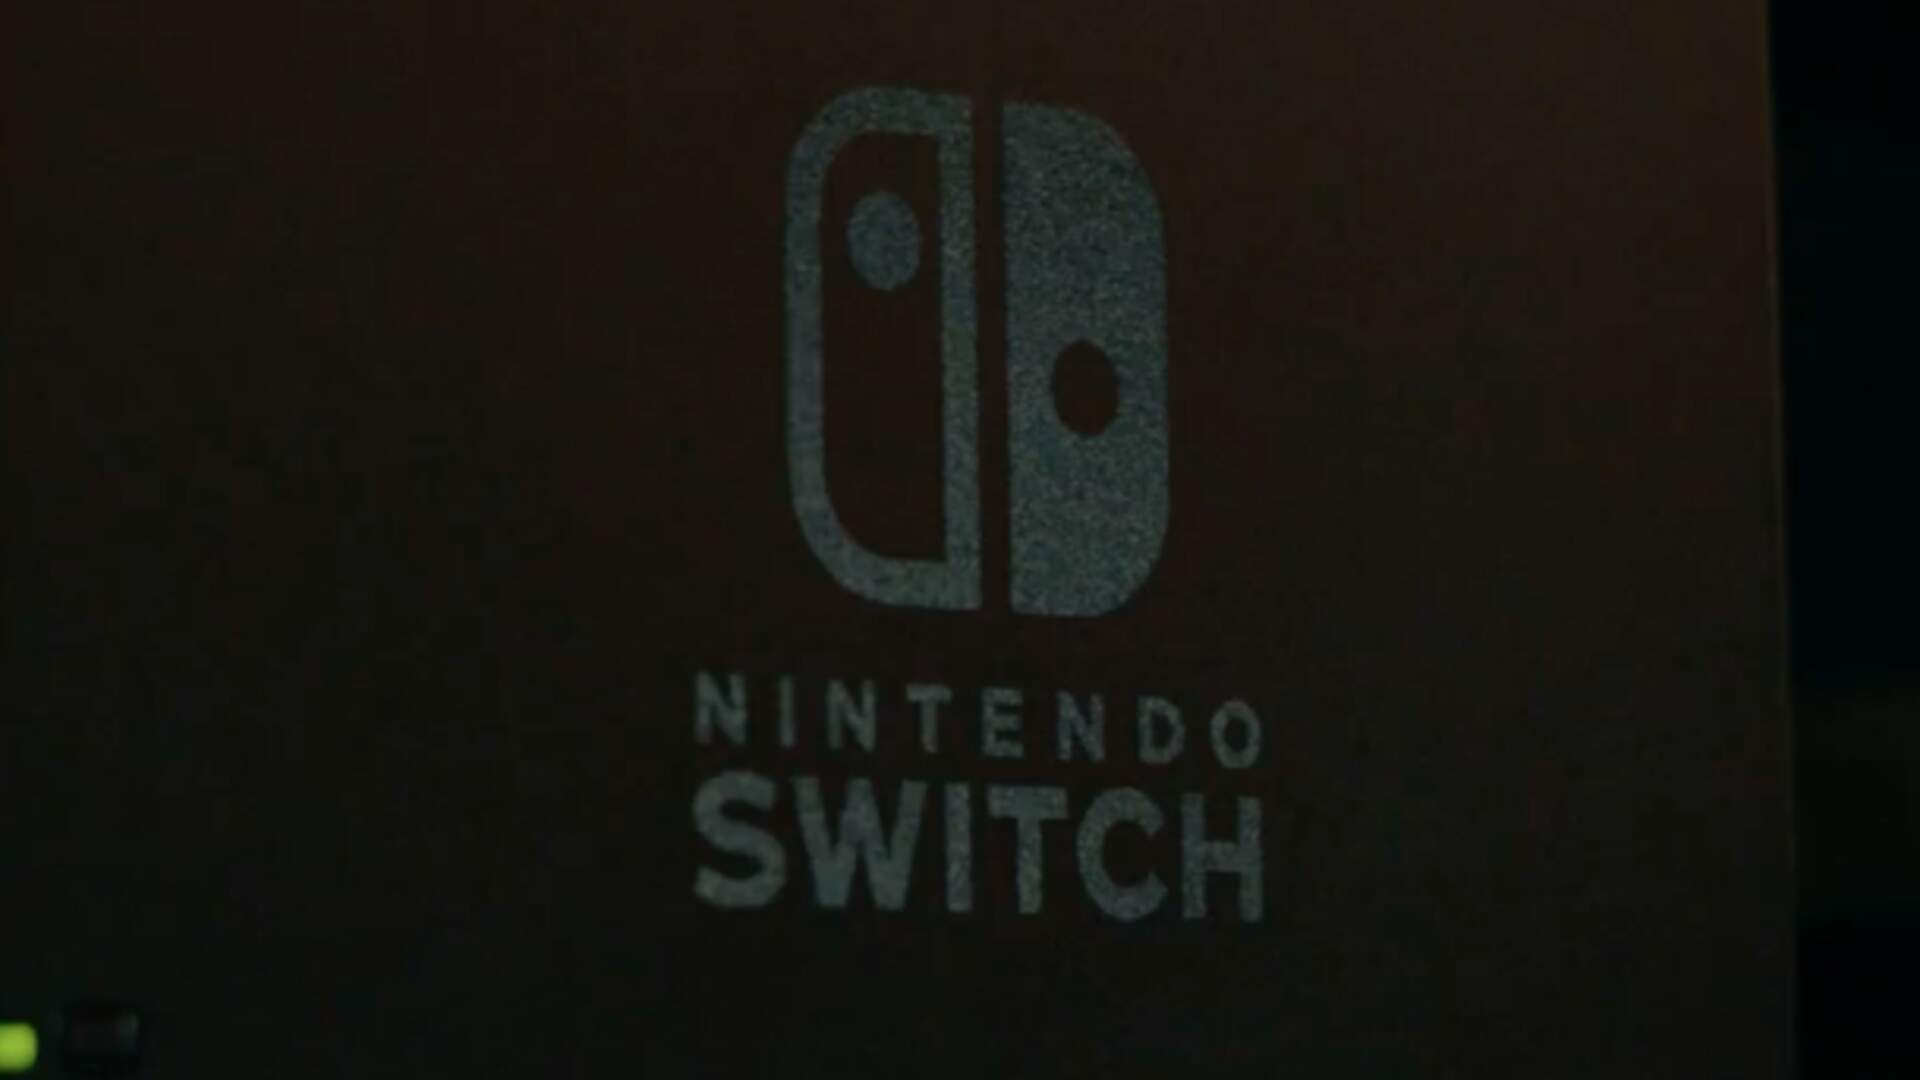 Nintendo Switch's Hybrid Nature: Some of the Strengths, All of the Weaknesses?